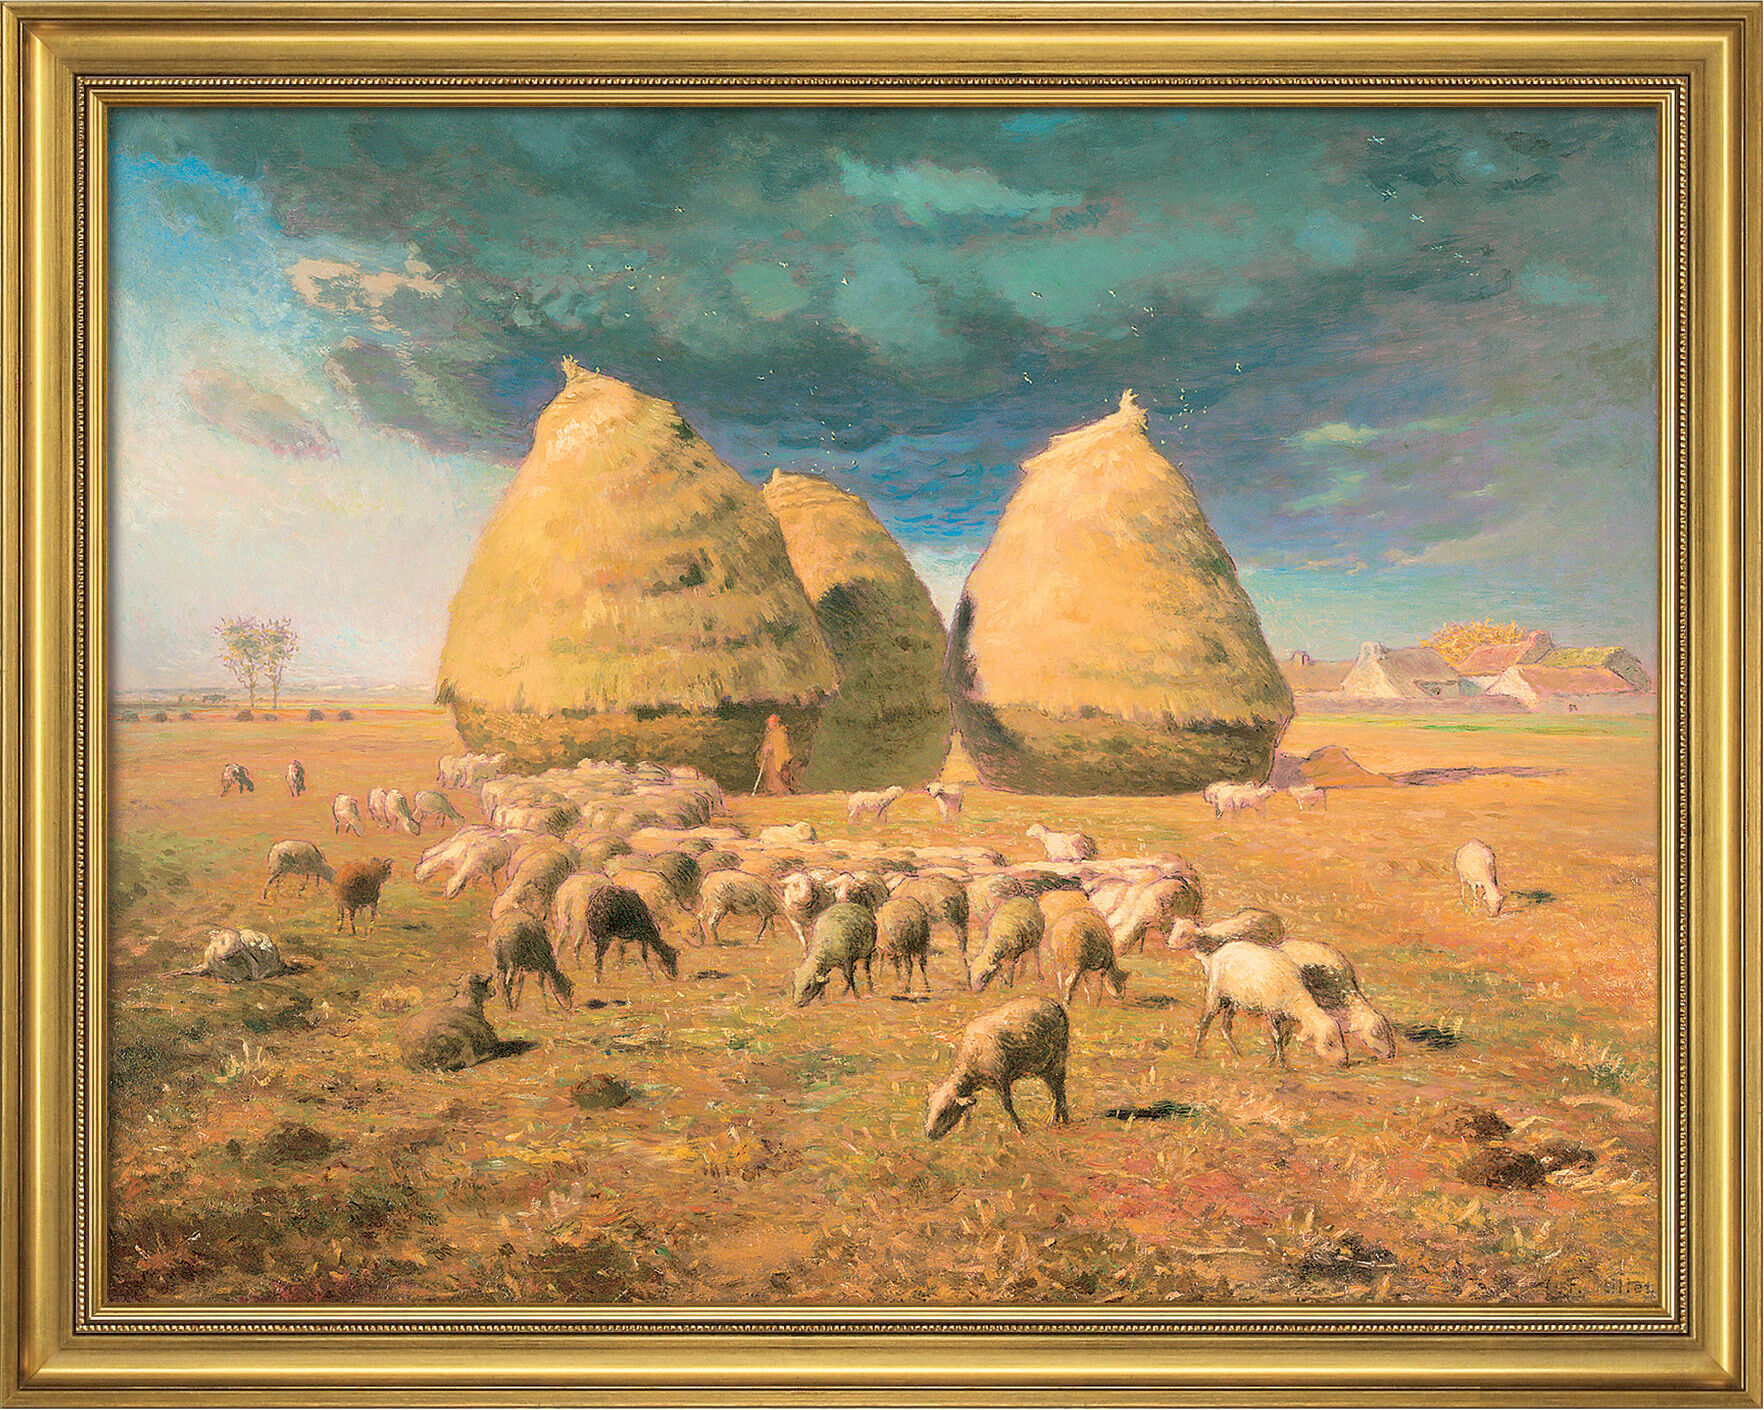 Picture 'Haystacks: Autumn' (around 1874) in museum framing